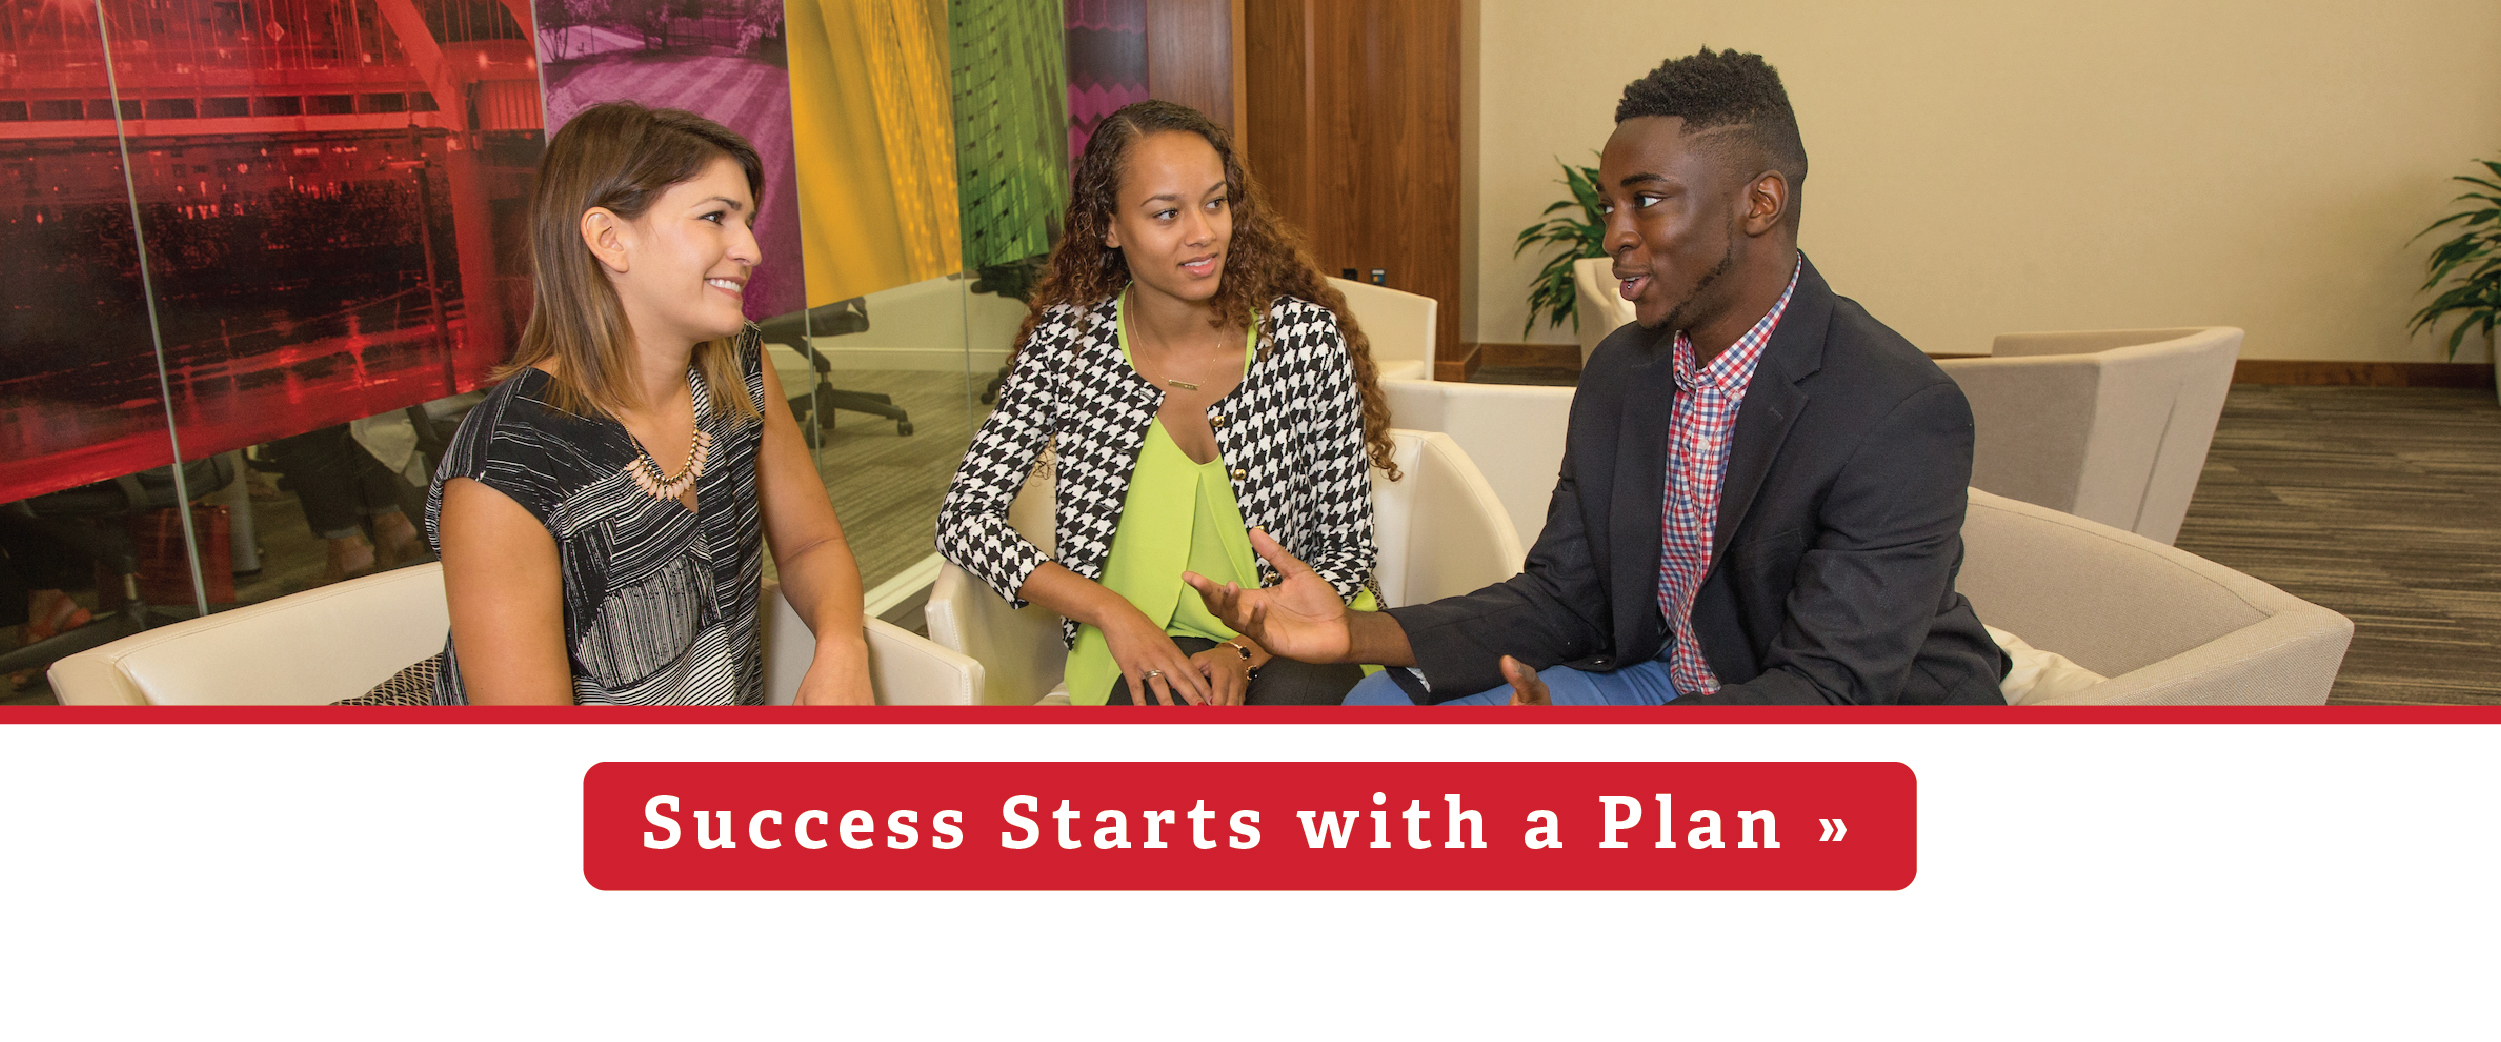 Success Starts with a Plan